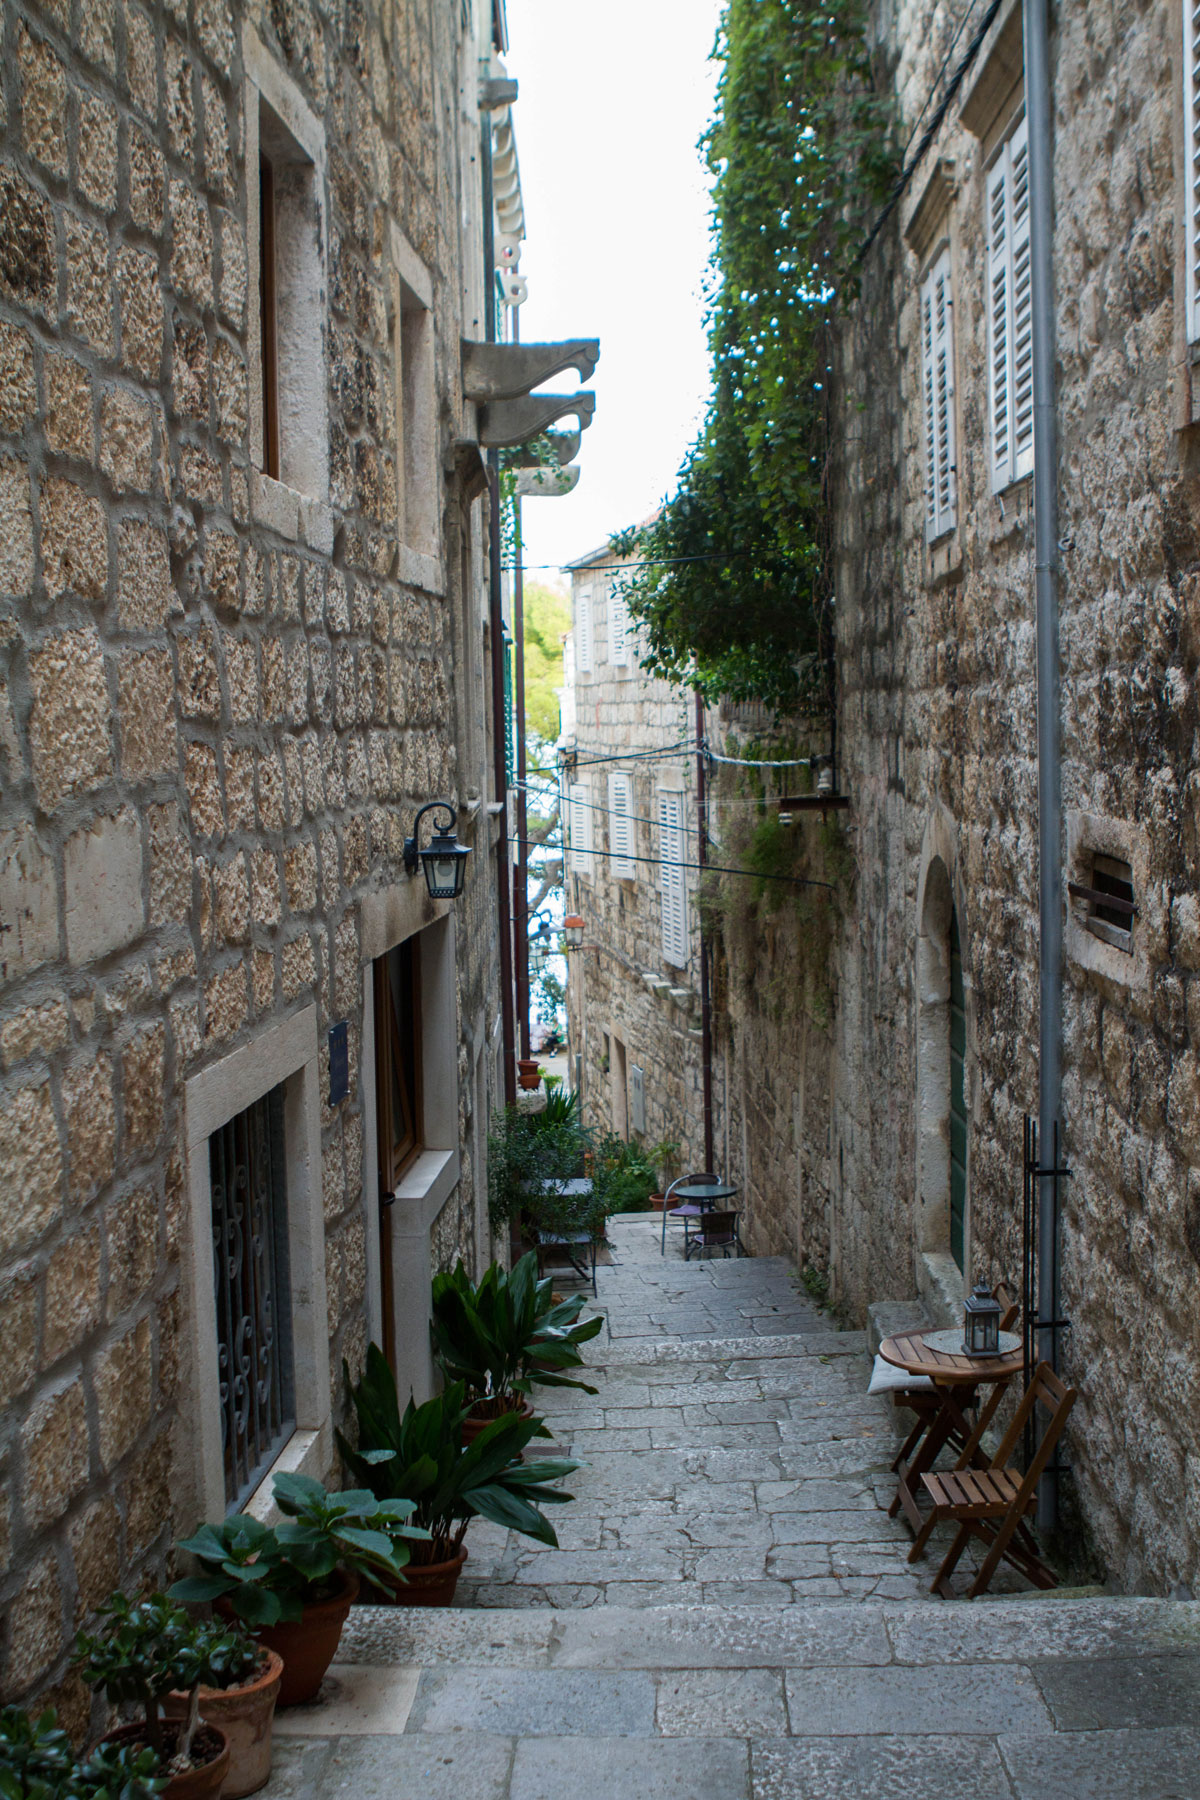 Streets-of-Korcula_Dalmatia-Coast-(photo